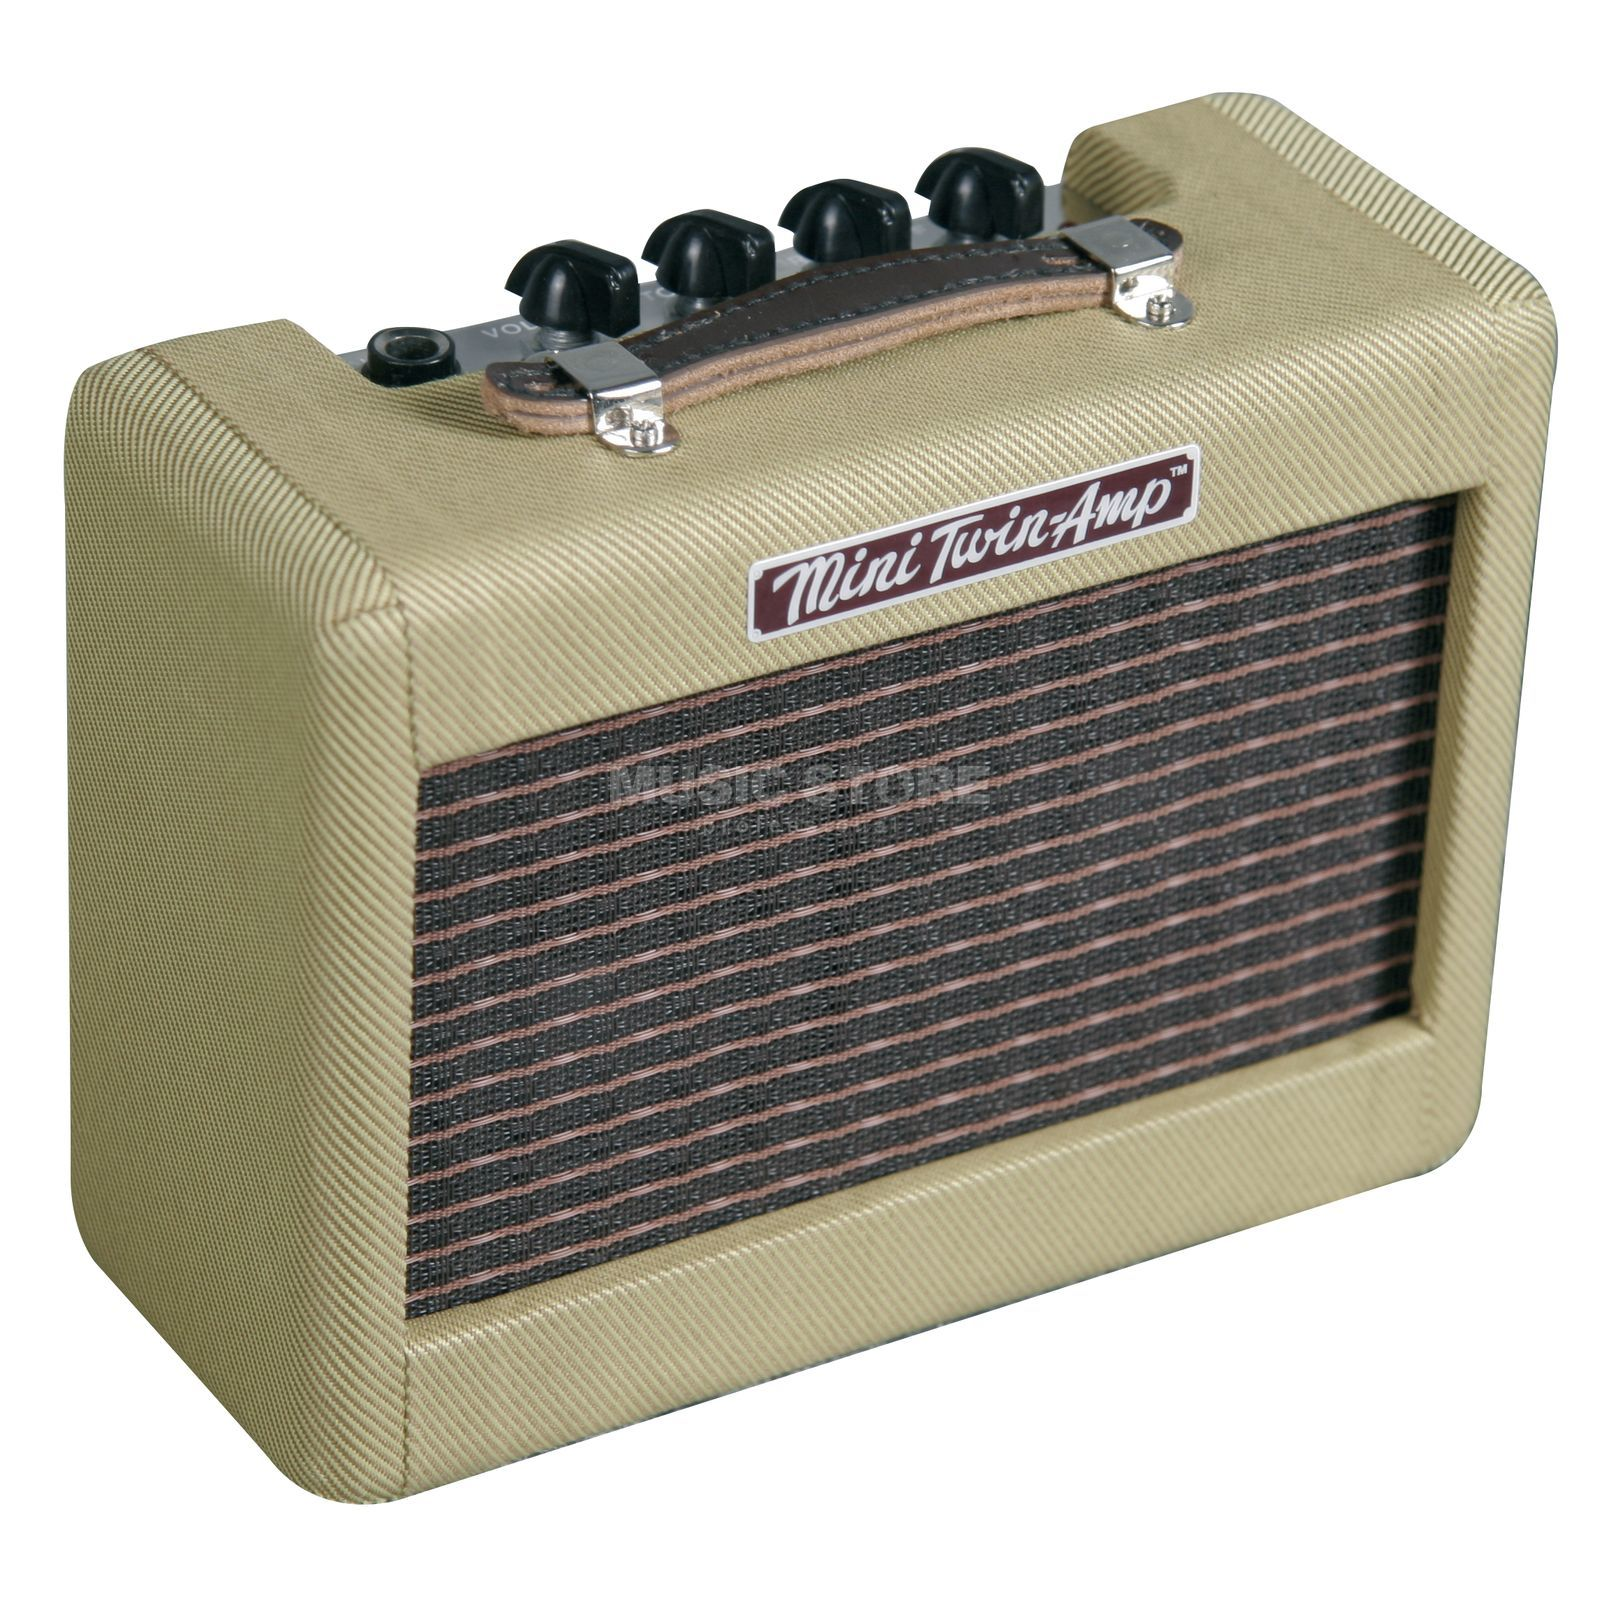 Fender Mini '57 Twin Amp Produktbild